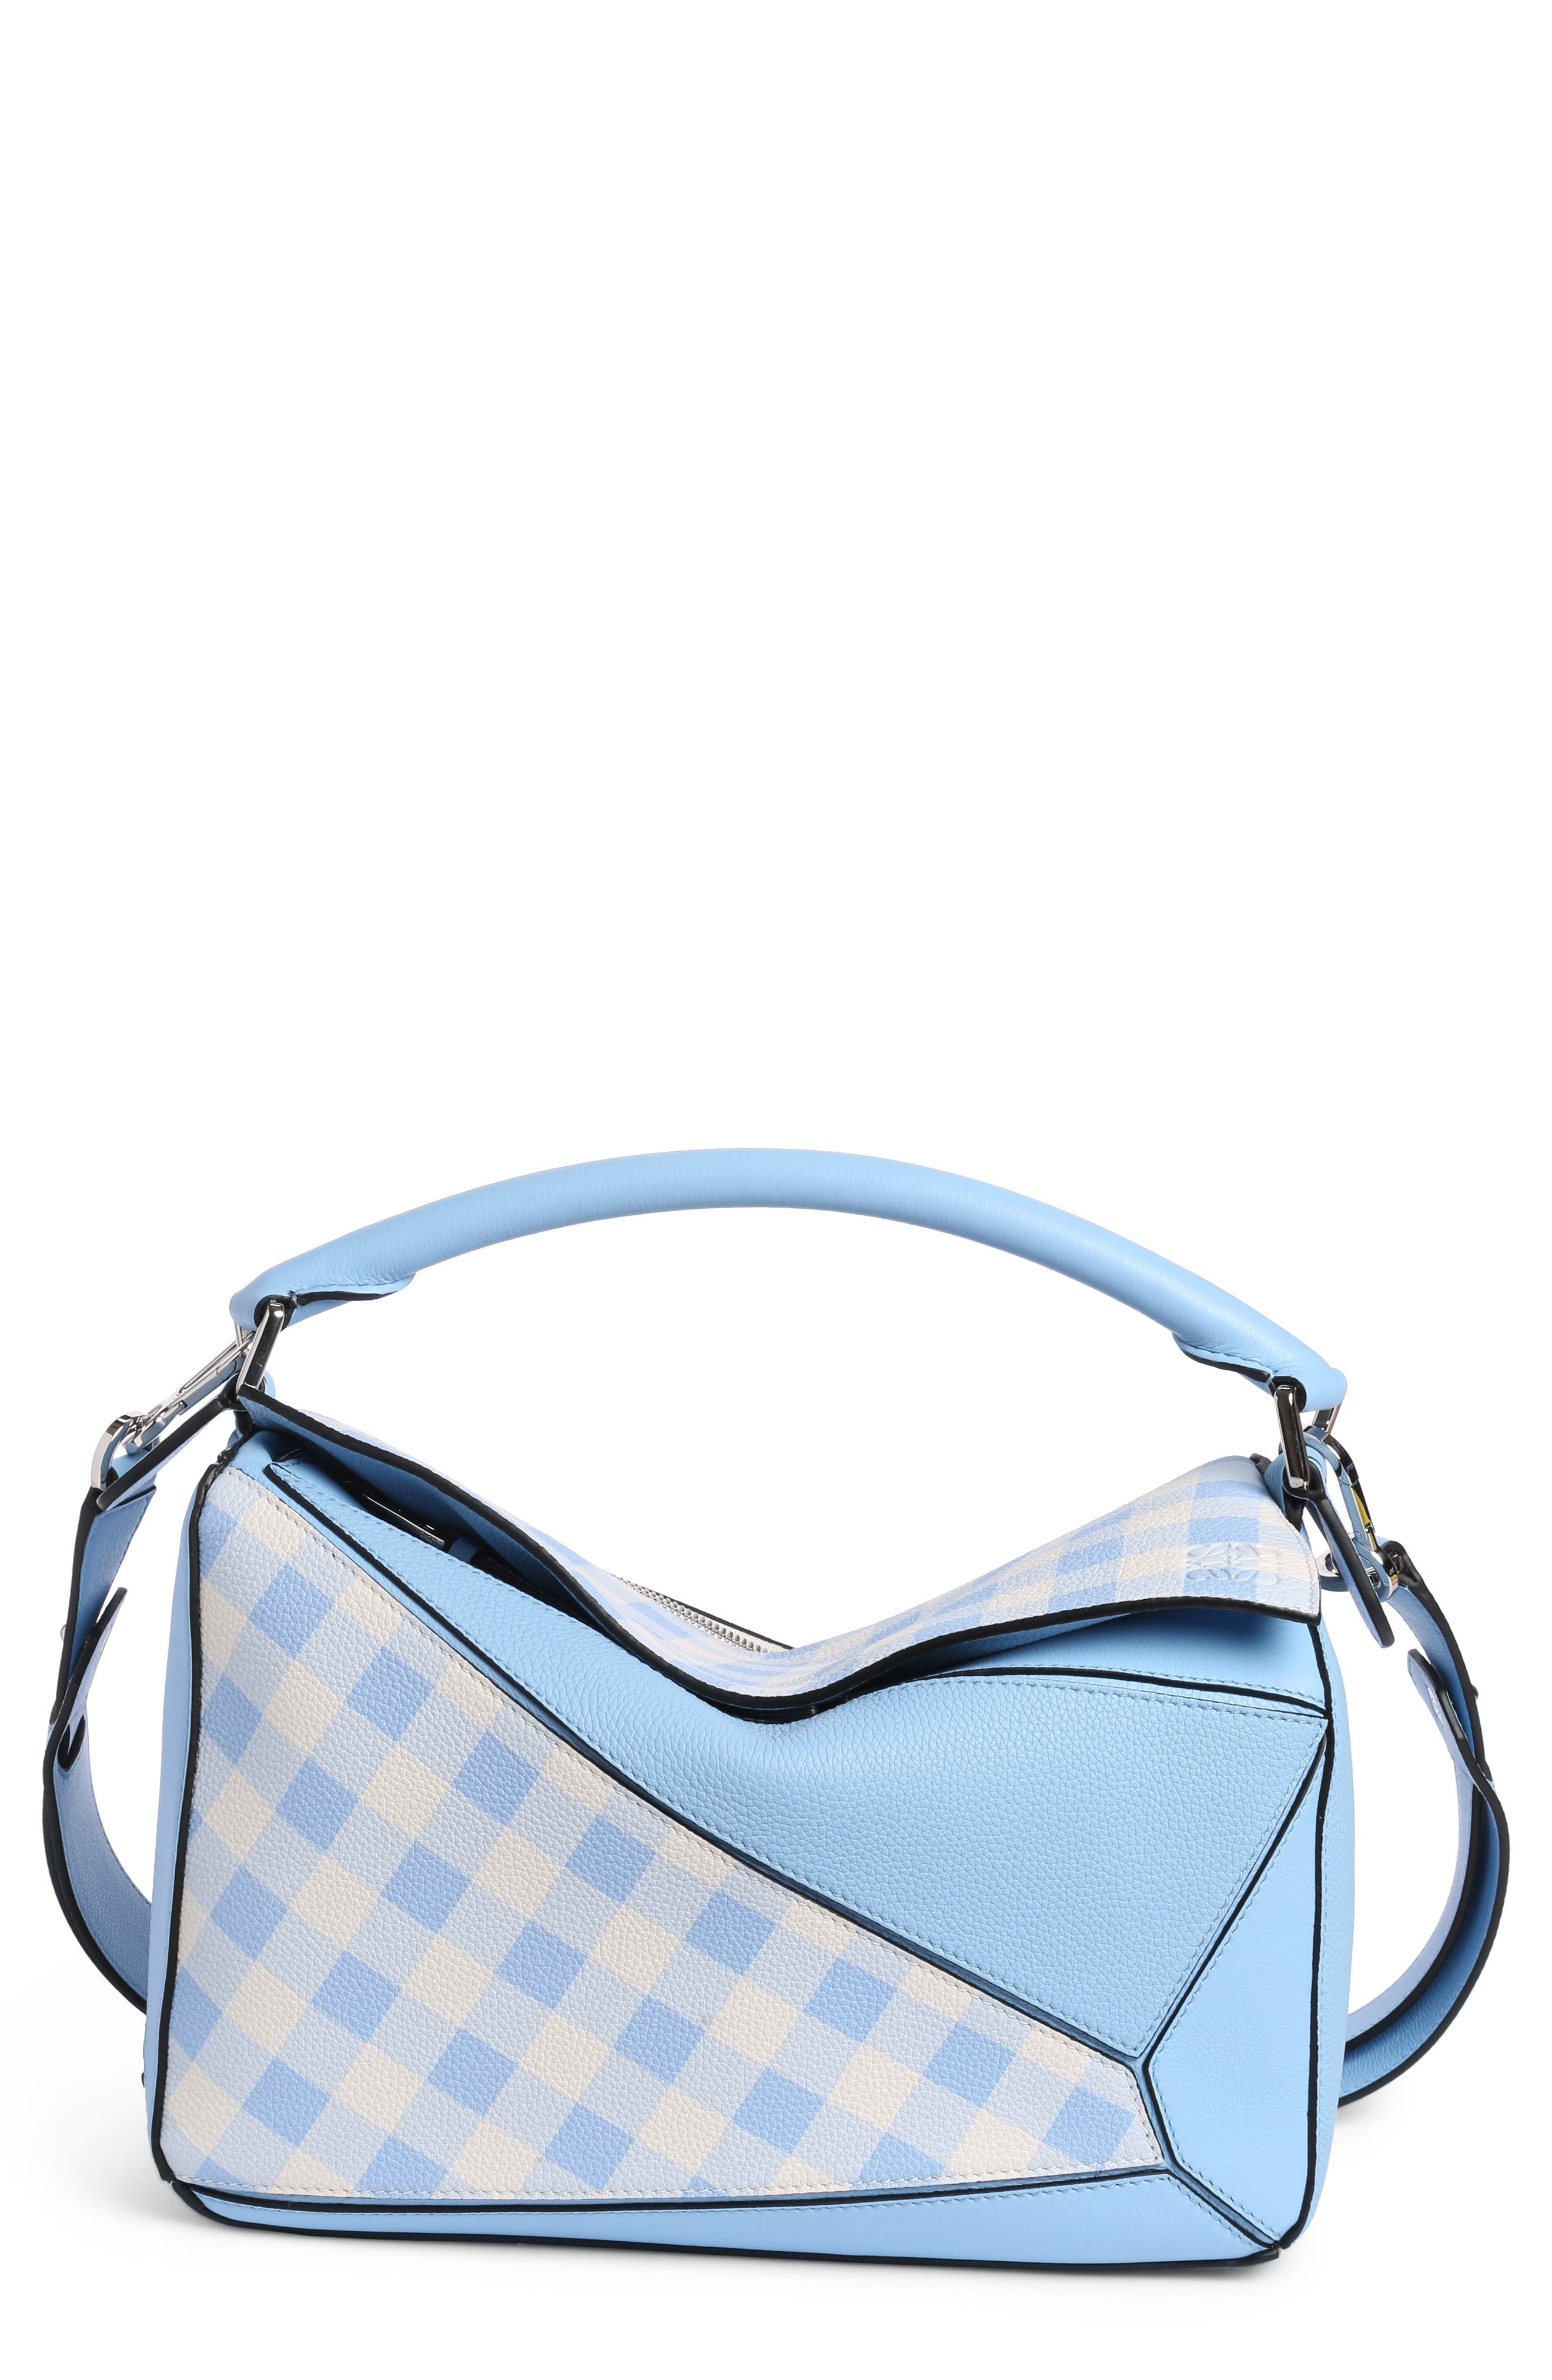 Puzzle Gingham Calfskin Leather Bag,                             Main thumbnail 1, color,                             455